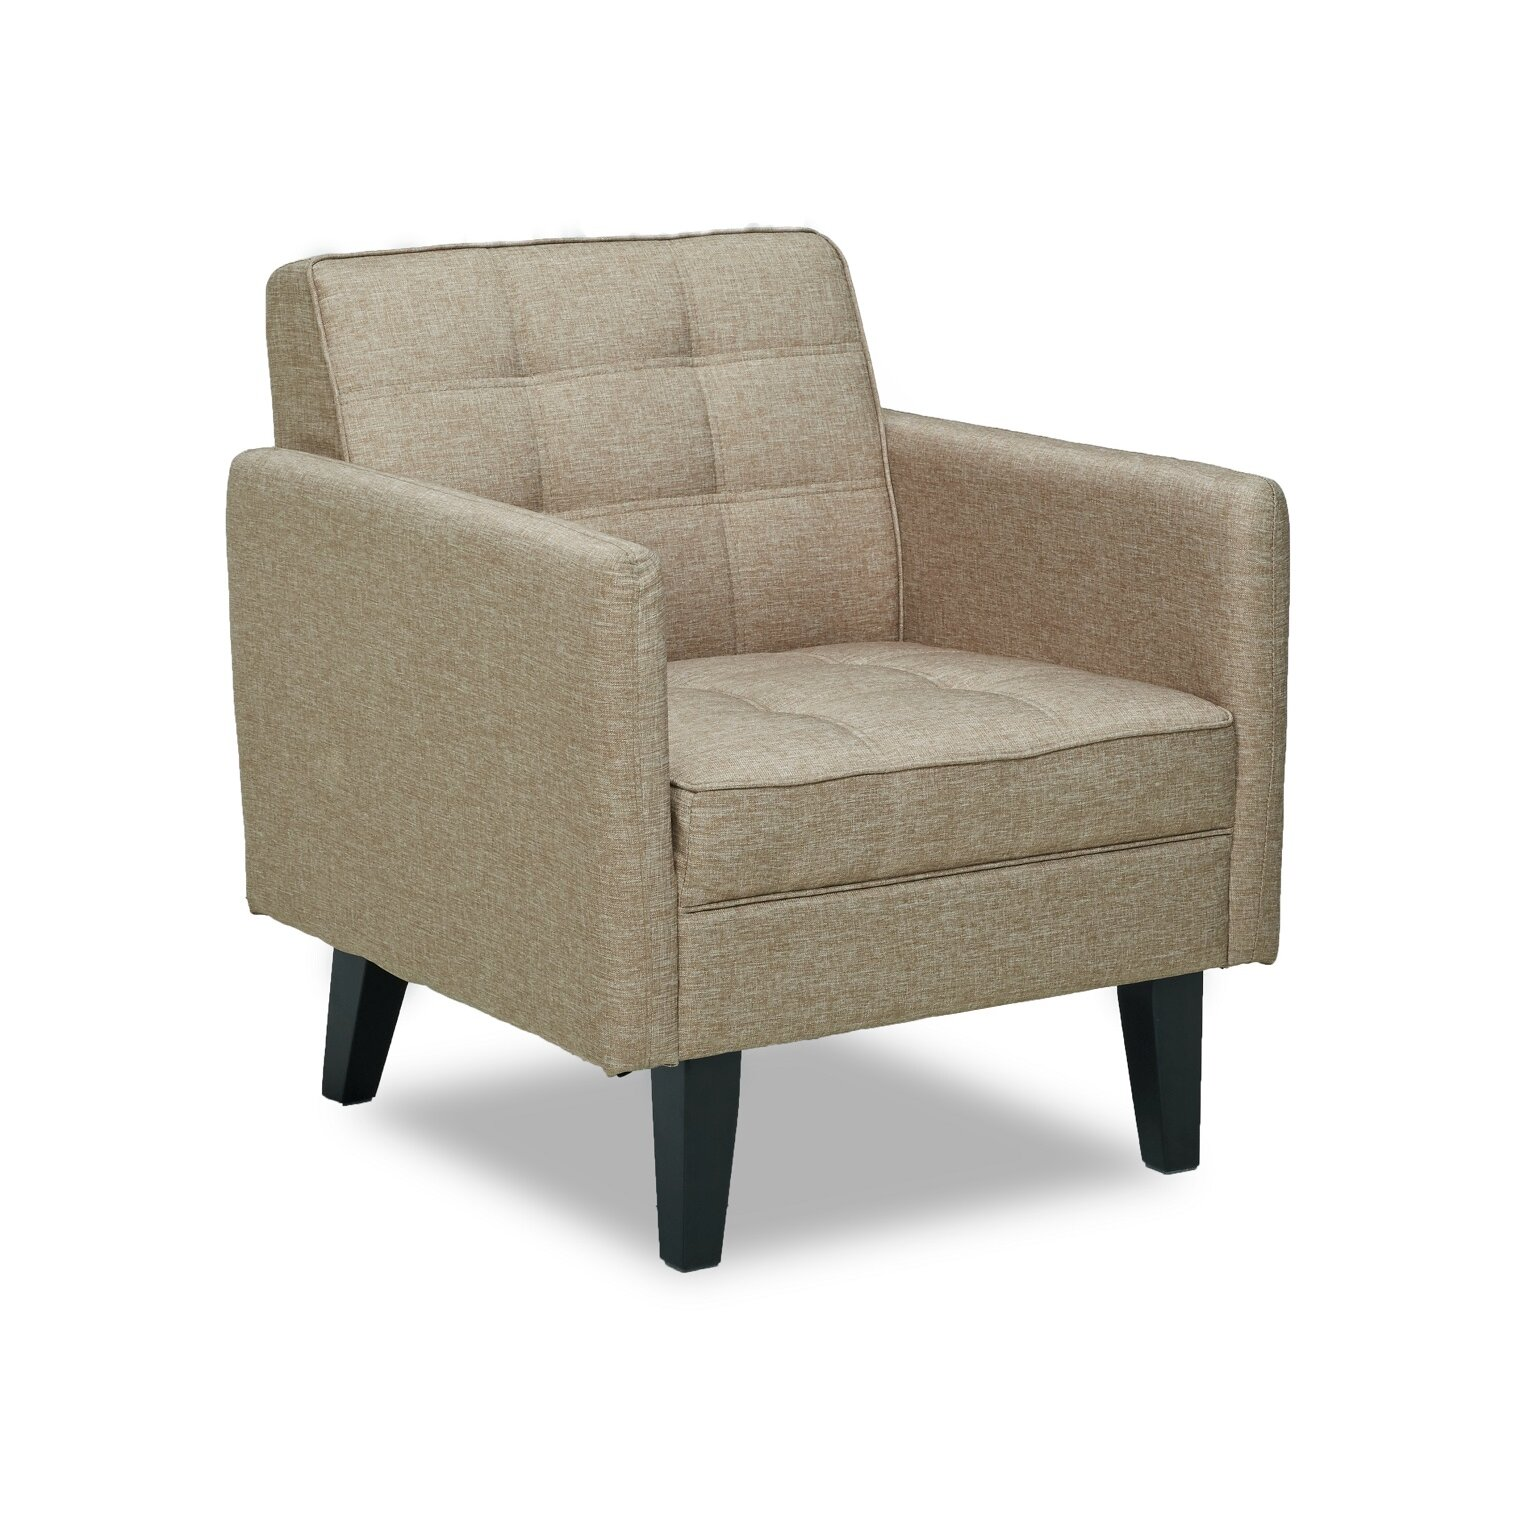 Container accent arm chair reviews wayfair for Occasional seating